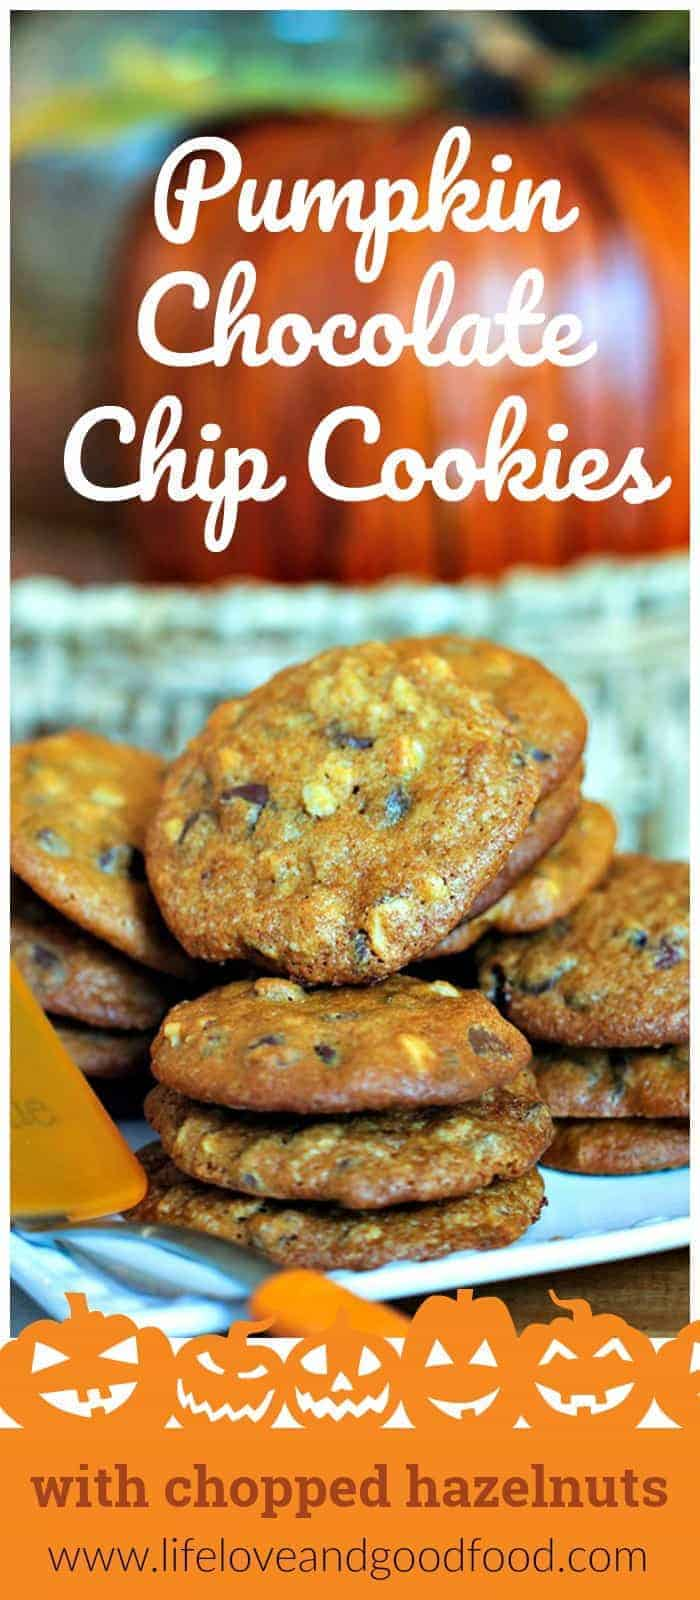 Pumpkin Chocolate Chip Cookies—light and airy pumpkin cookies chock full of chocolate chips and chopped hazelnuts—are perfect for Fall parties or tailgates! #cookies